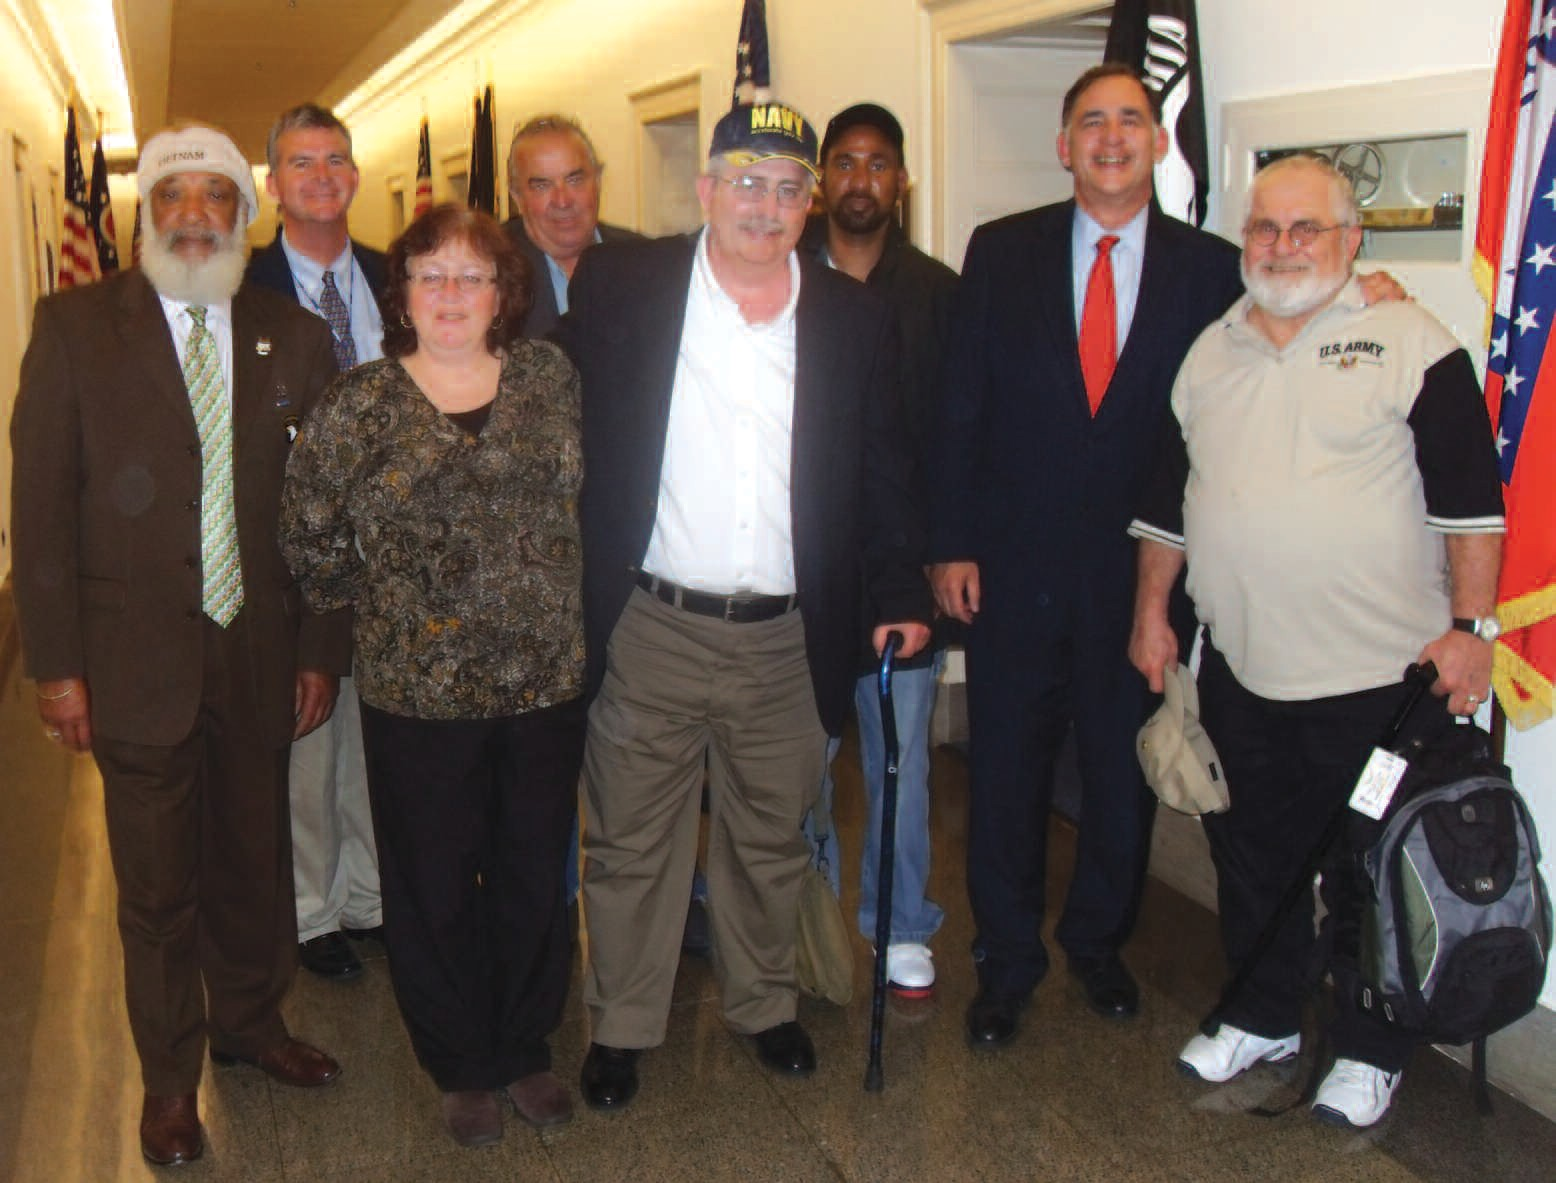 Veterans and supporters are pictured with John Boozman, Ranking member of the Economic Opportunity Subcommittee House Veterans Affairs Committee